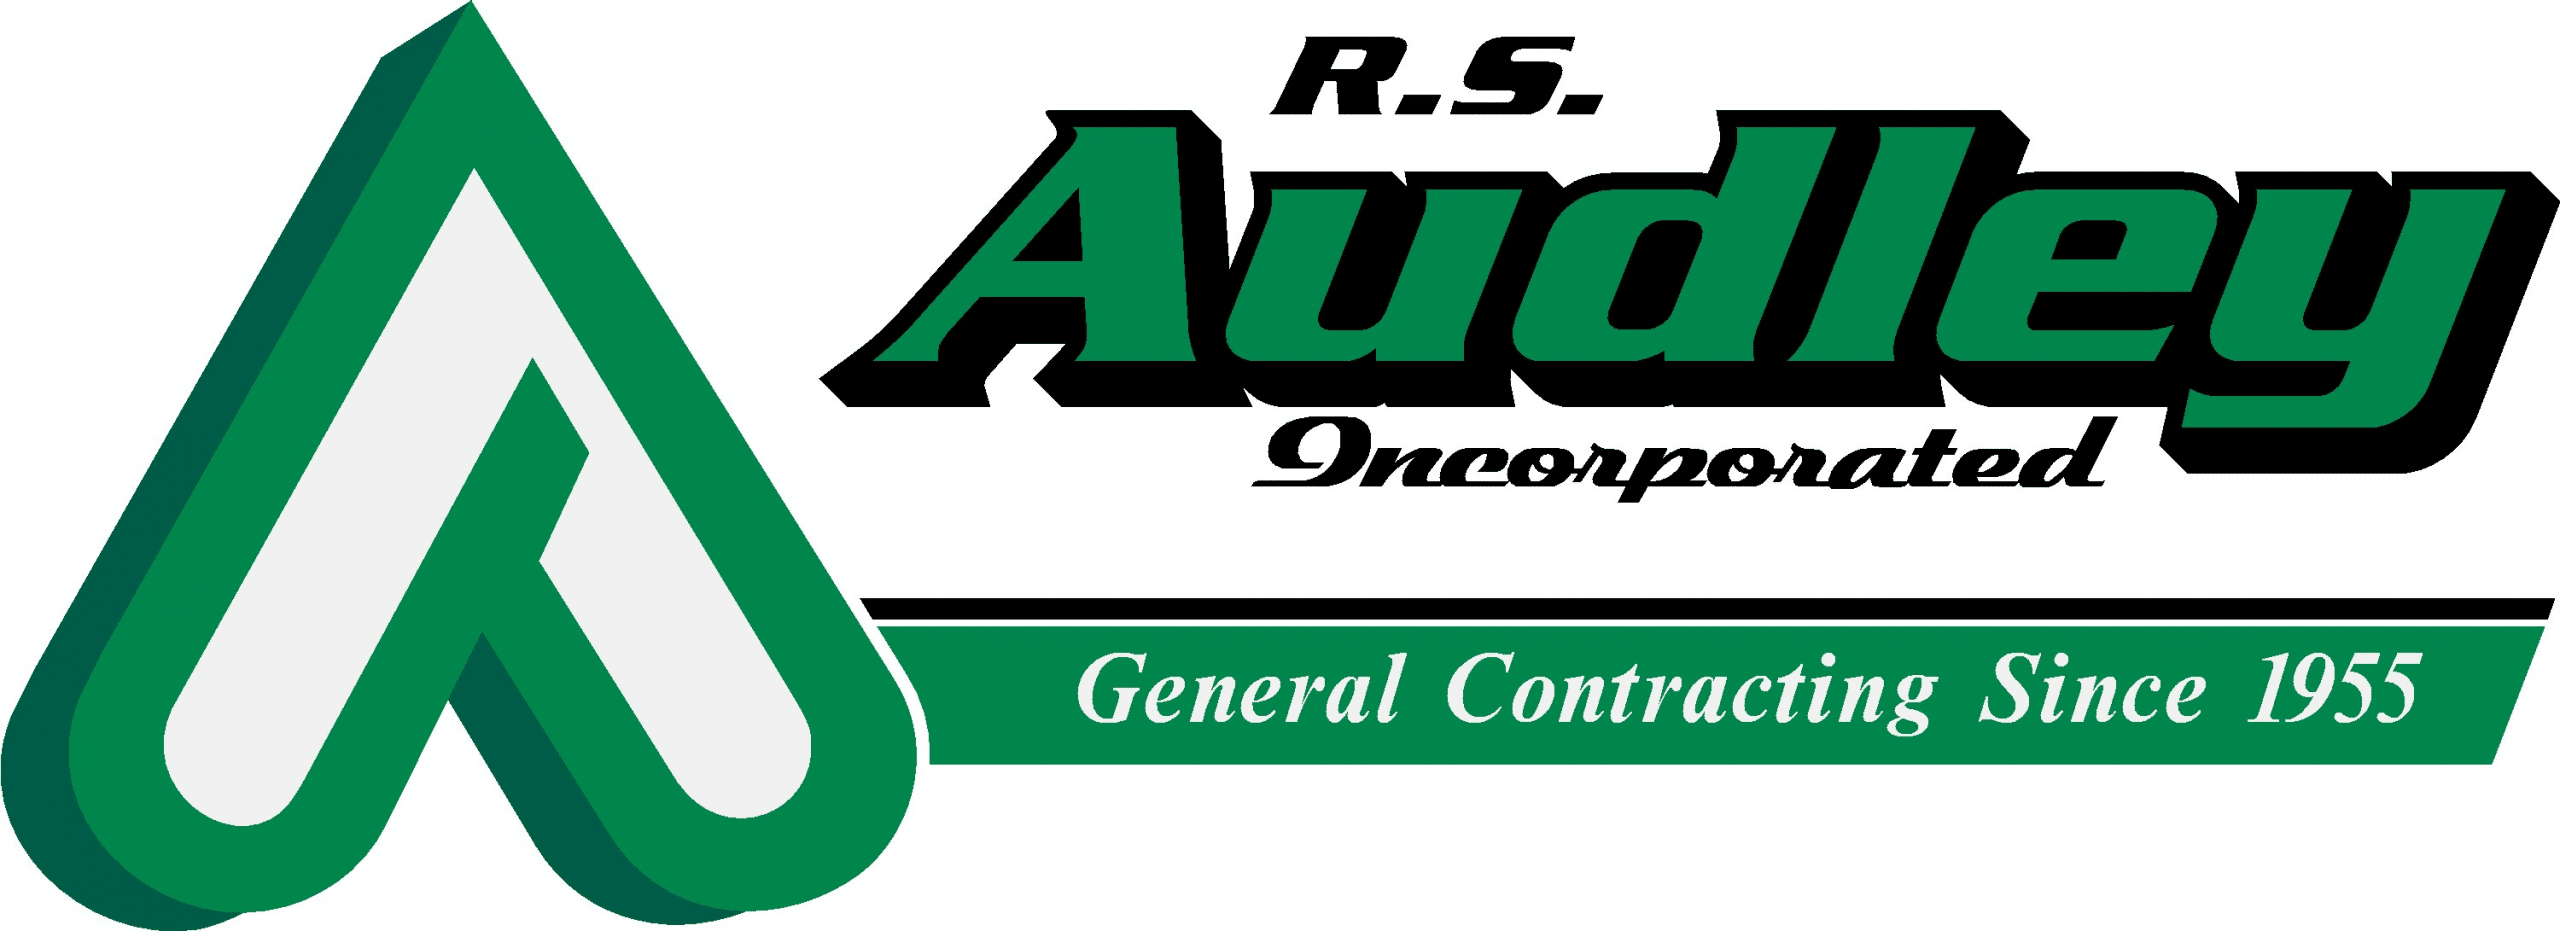 R.S. Audley logo